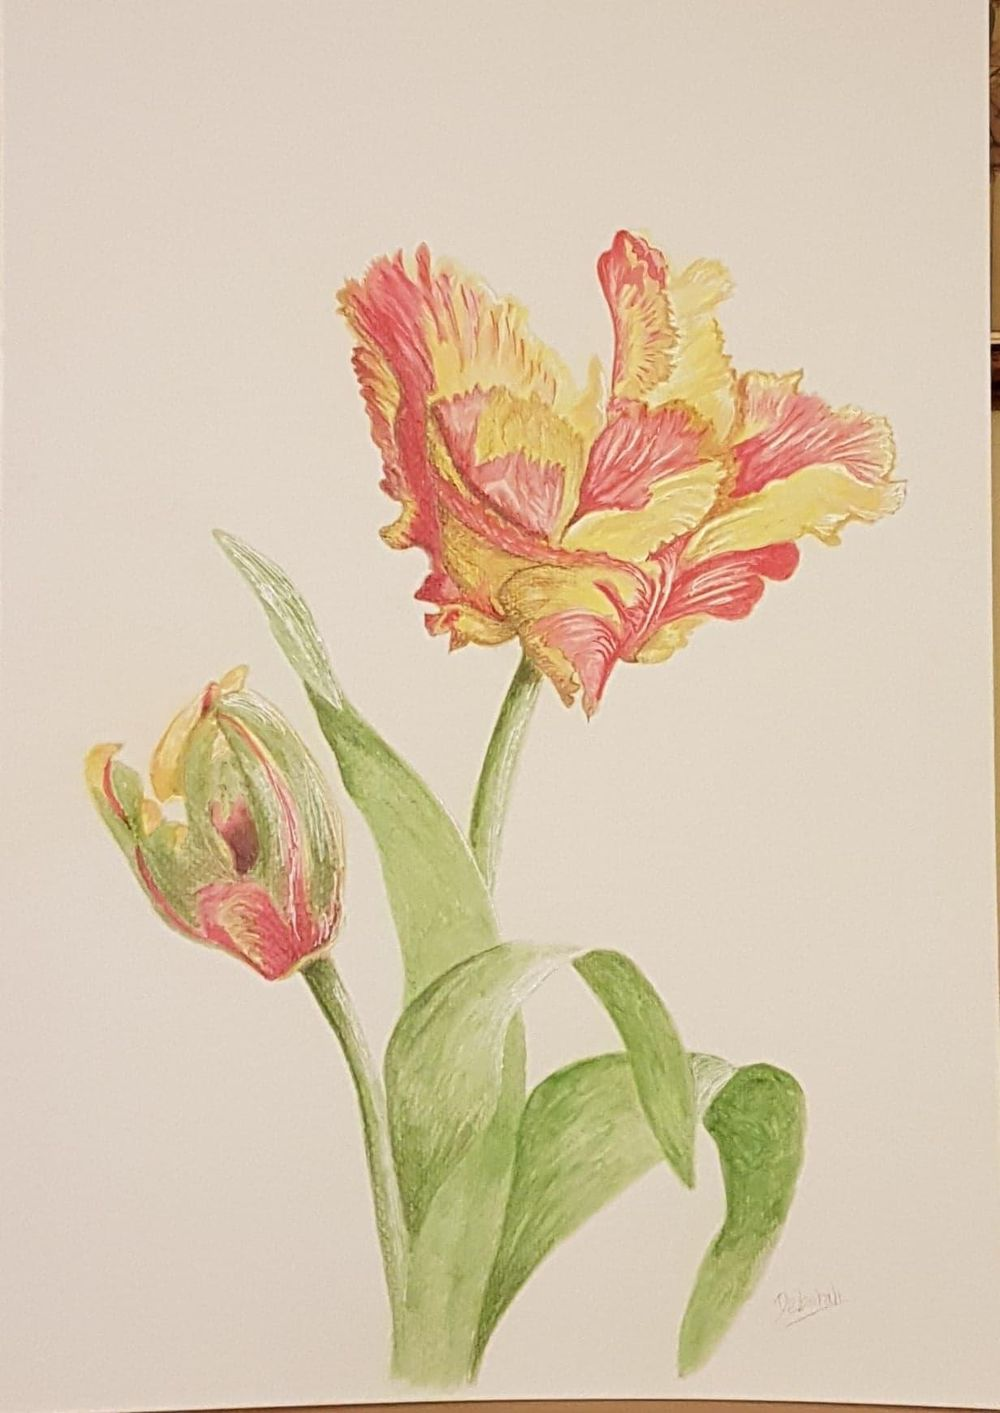 My first mixed media project - Parrot Texas Flame Tulips - image 3 - student project